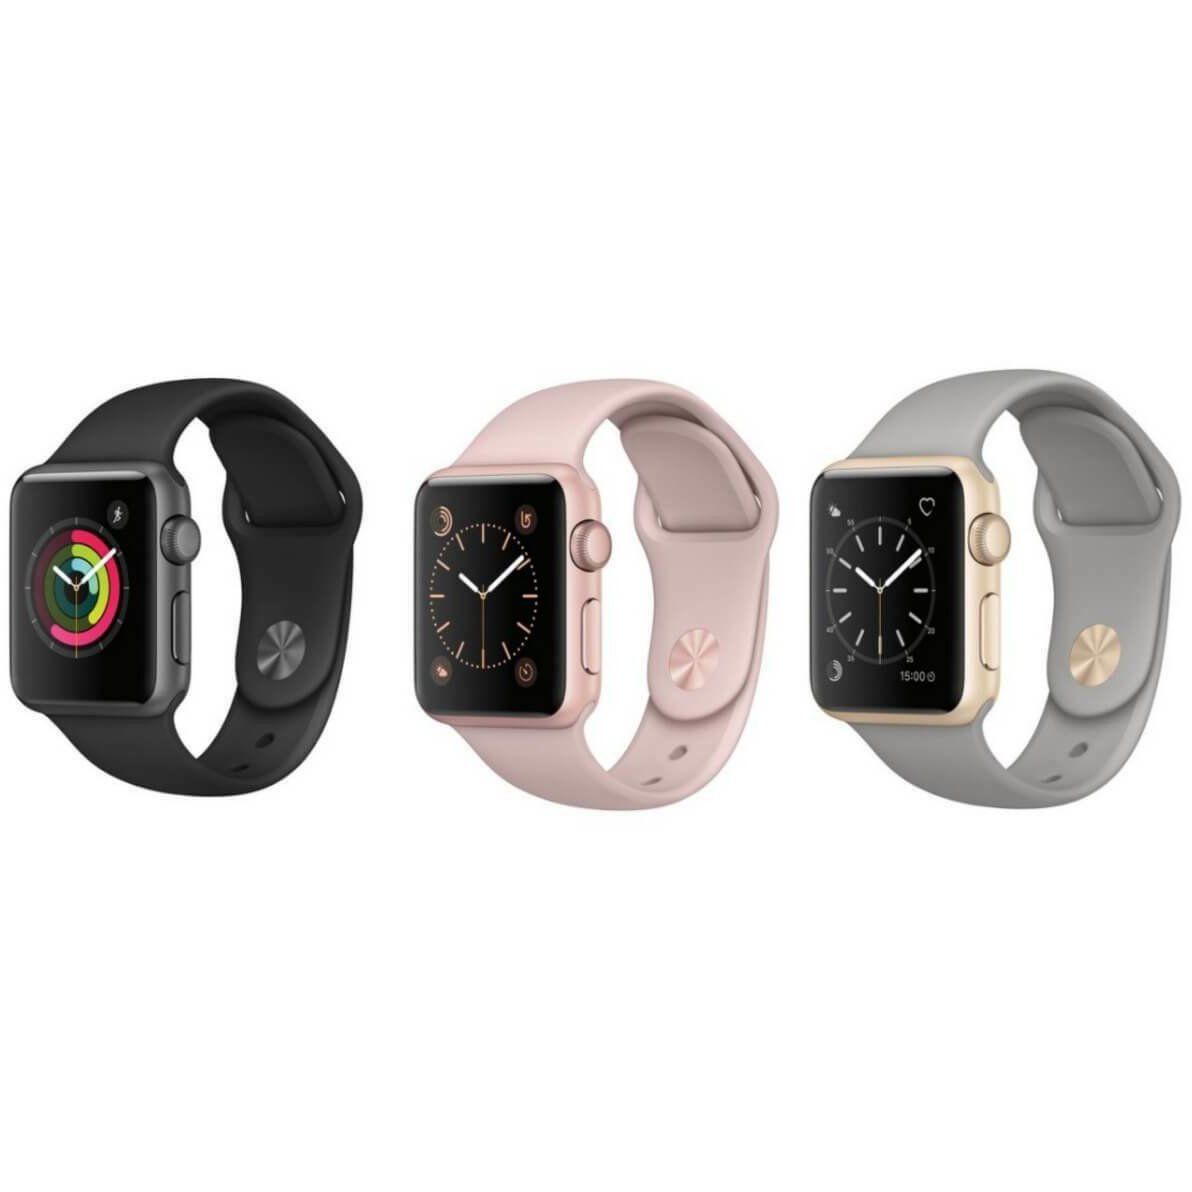 Apple Watch  Series 2 Aluminum GPS with Sport Band - Fix Or Cell Now Device Shop